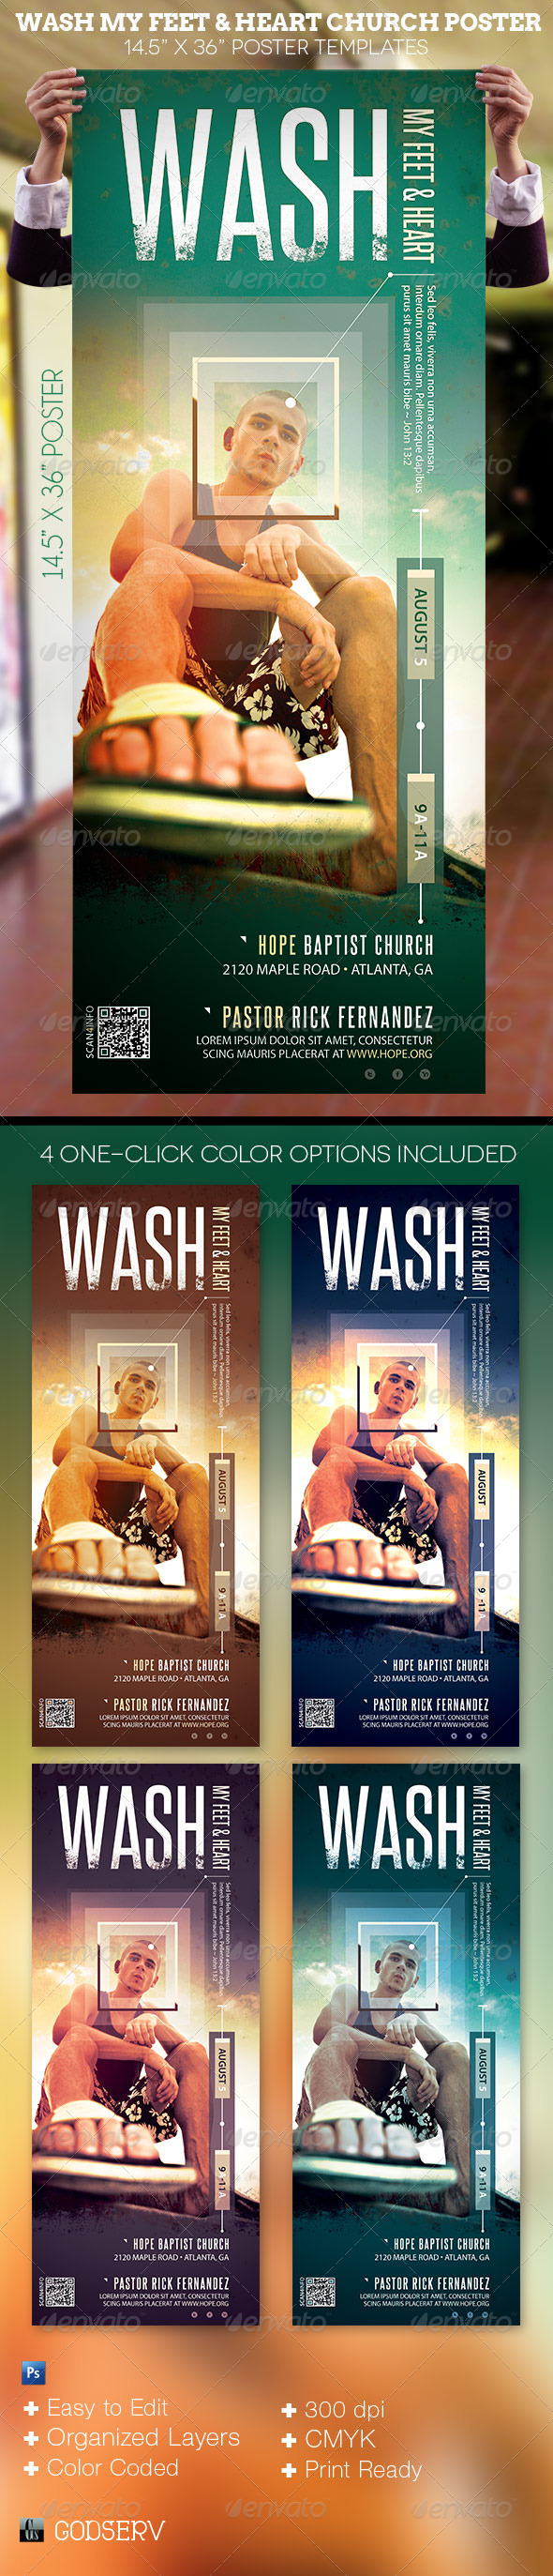 Wash My Feet and Heart Church Poster Template - Signage Print Templates